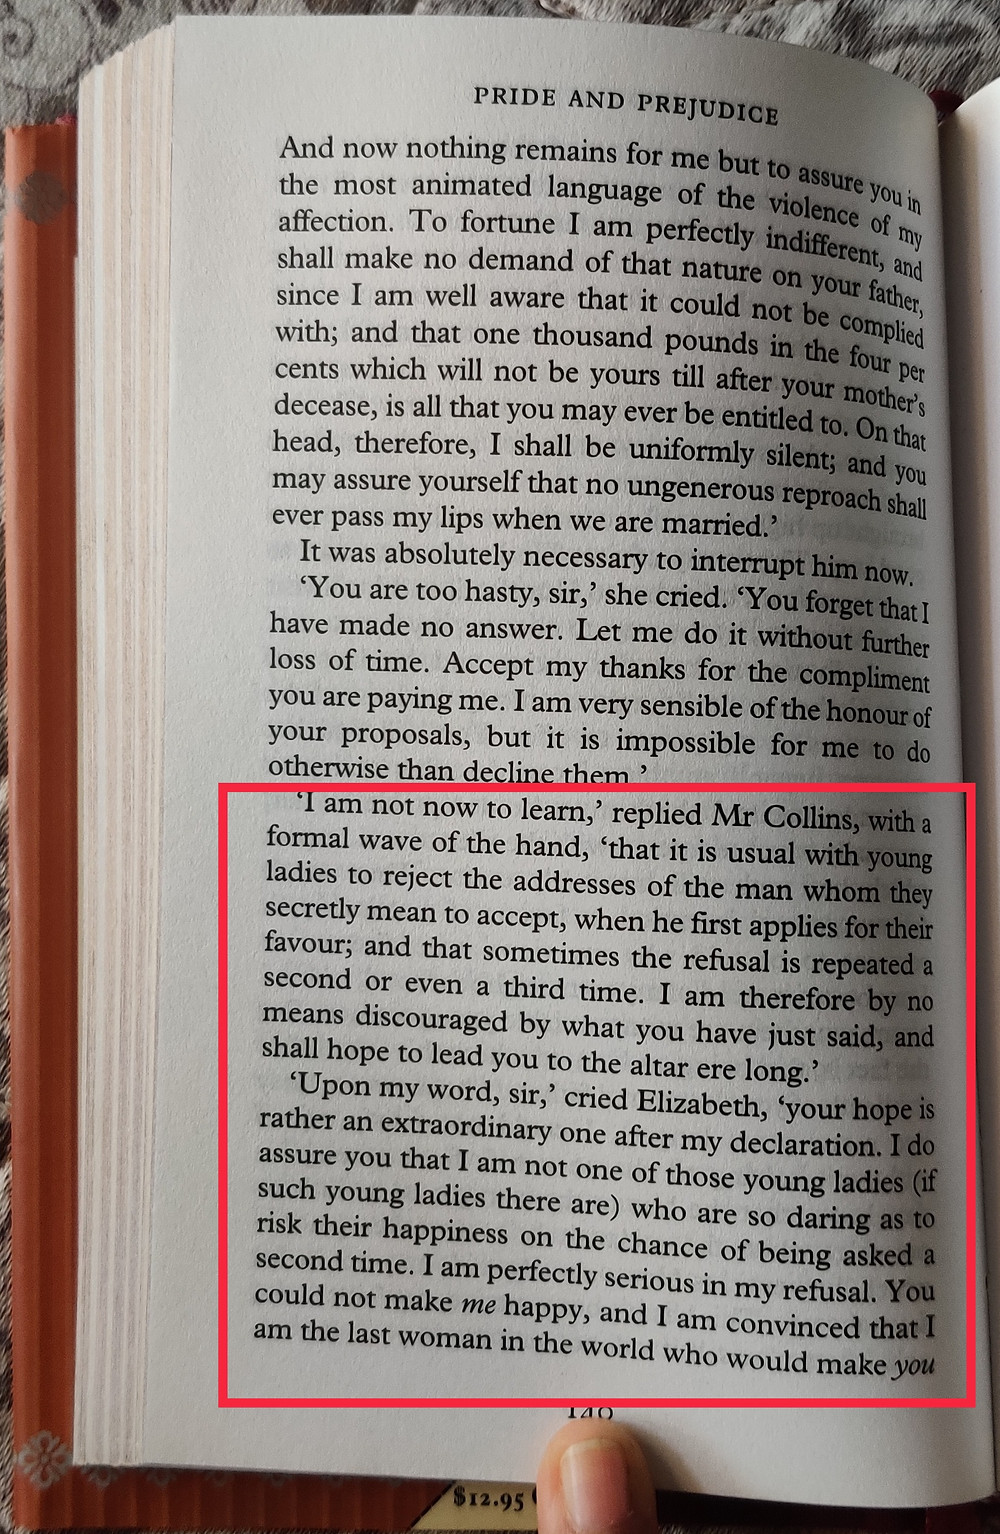 A page of Pride and Prejudice with a dialogue between Mr. Collins and Elizabeth highlighted (Mr. Collins's interpretation of Elizabeth's rejection of his proposal and her scathing reply)